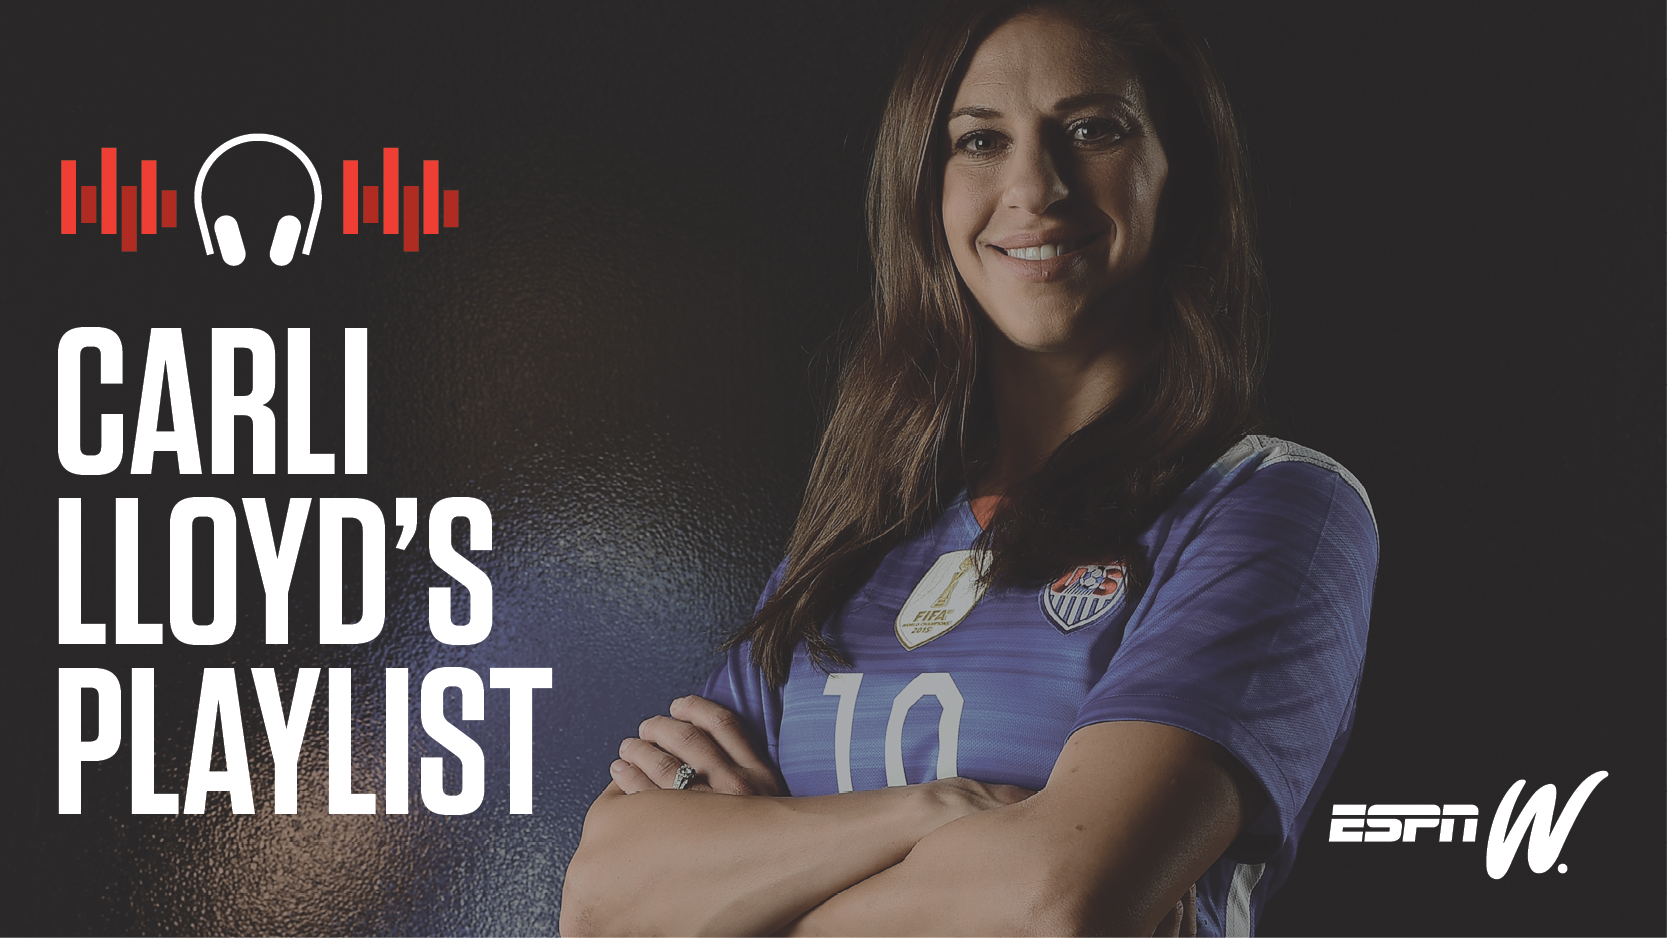 Spotify Athlete Playlist - Carli Lloyd